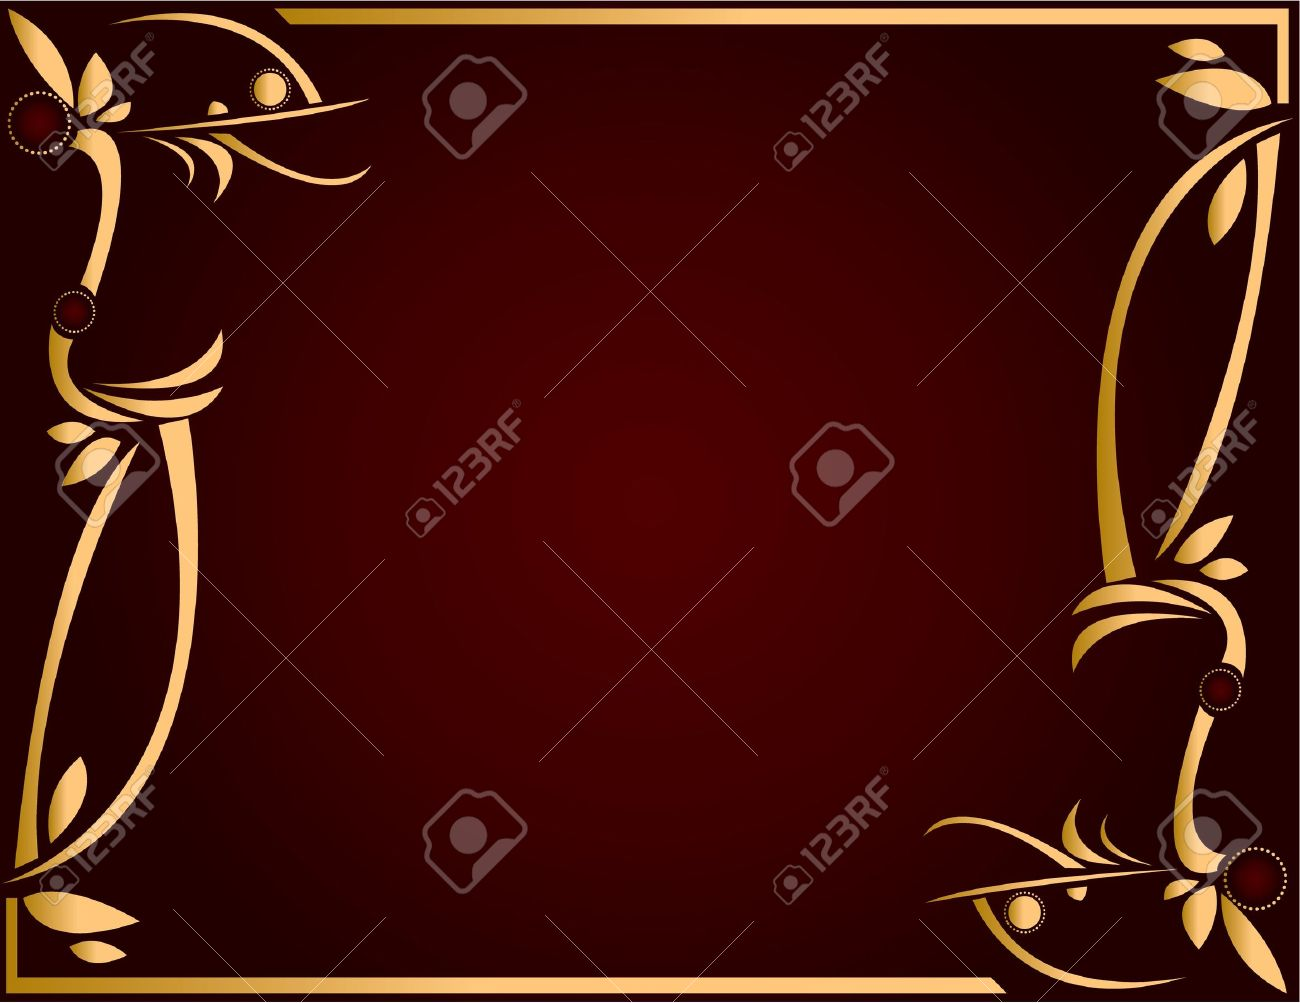 Gold abstract design on a burgundy background with space for copy Stock Photo - 5162048